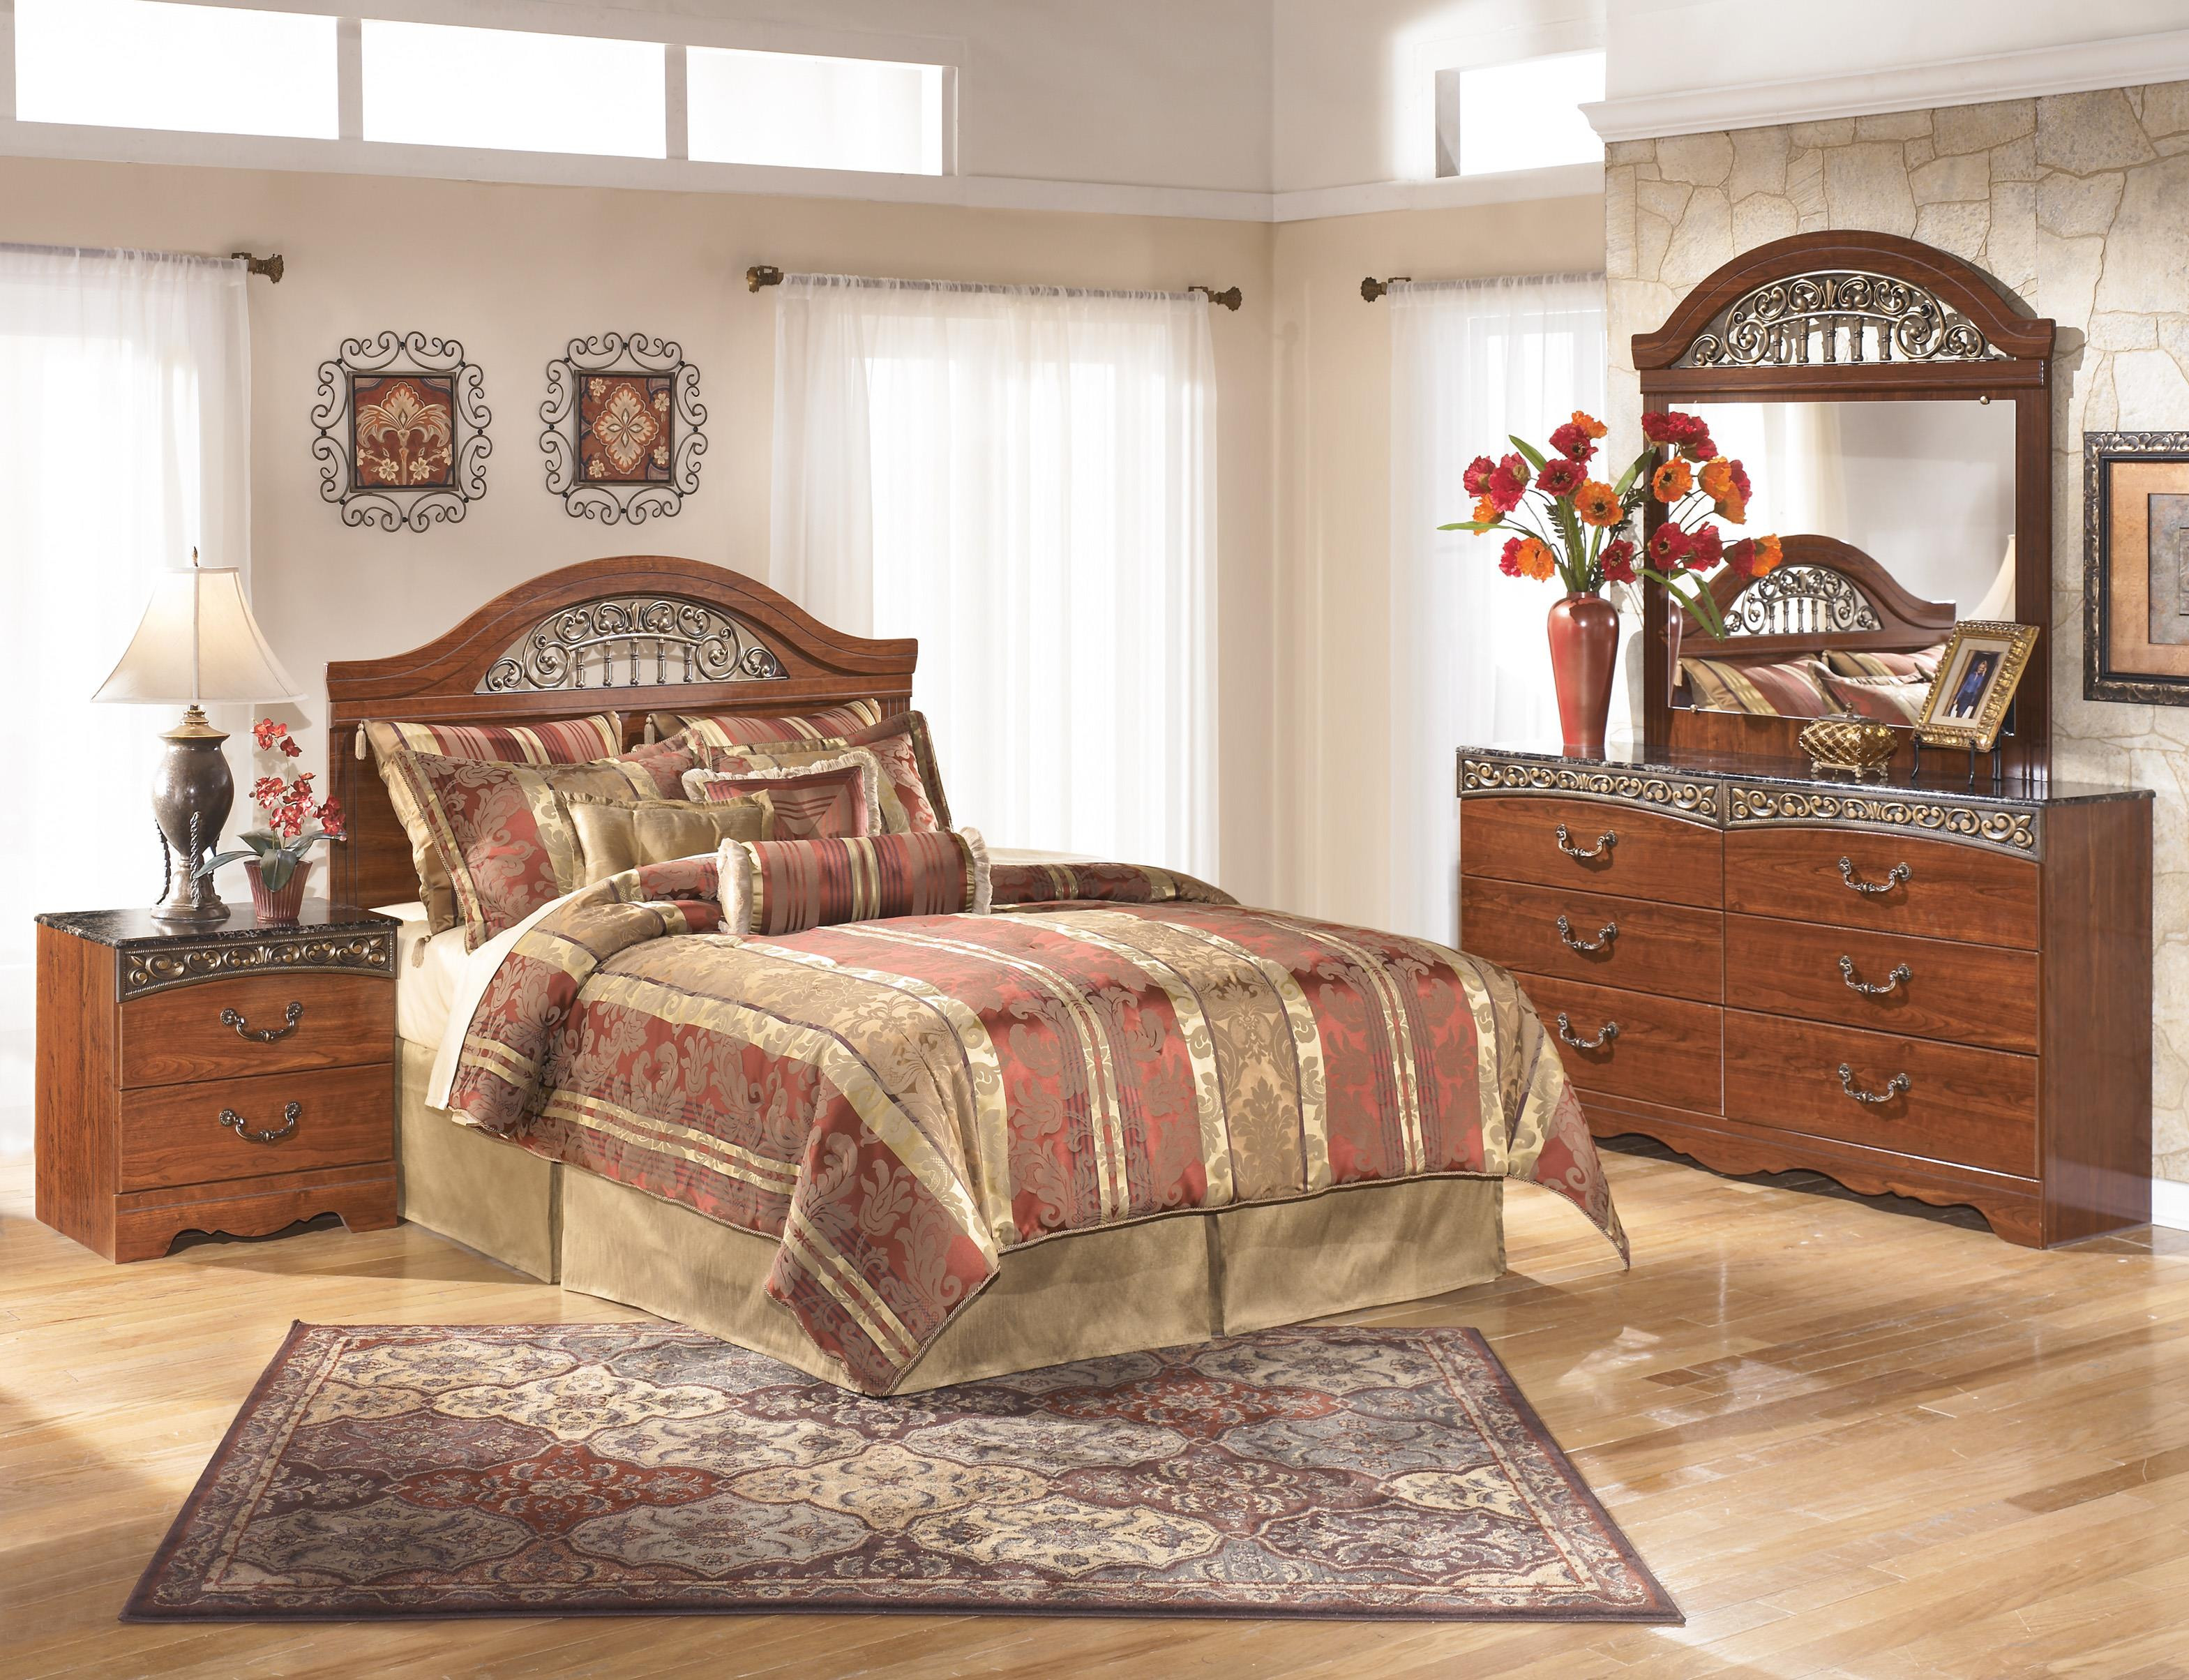 Best ideas about Ashley Bedroom Sets . Save or Pin Signature Design by Ashley Fairbrooks Estate Queen Bedroom Now.